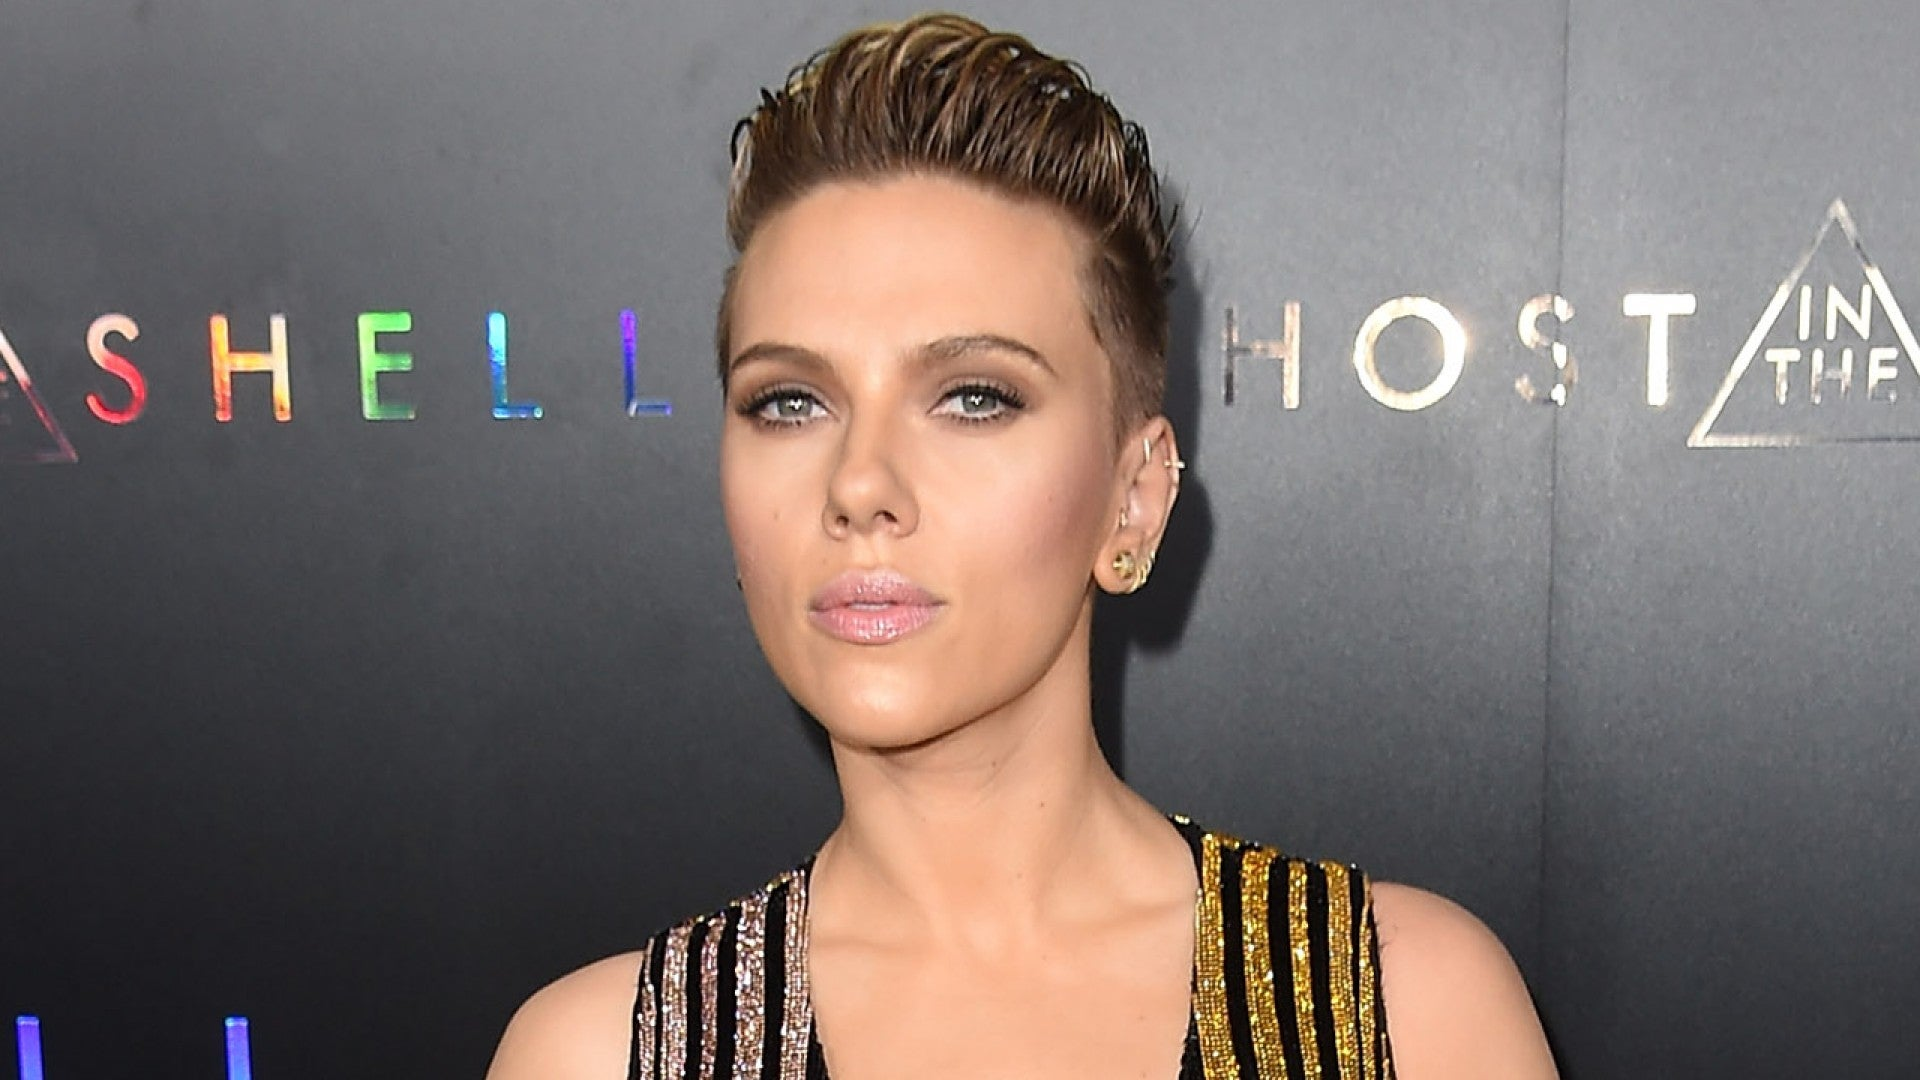 Exclusive Scarlett Johansson Stuns At Ghost In The Shell Premiere Says It S Important To Push Boundaries Entertainment Tonight